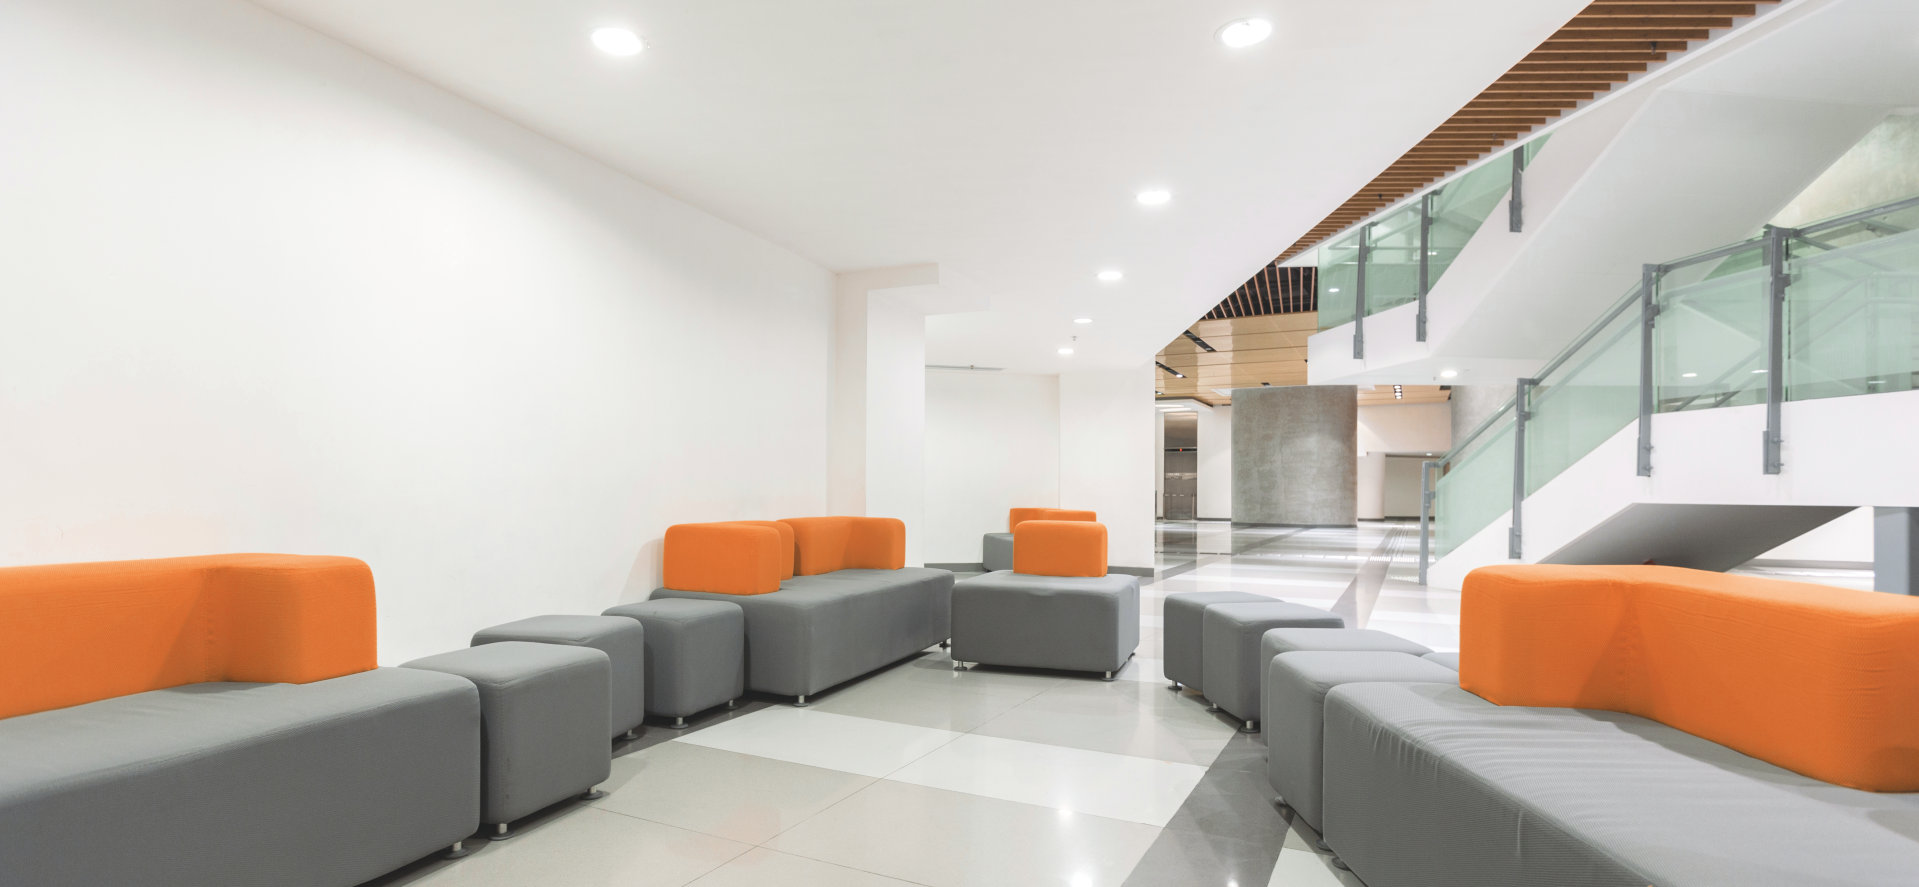 office lightings. Lighting Solutions For Office Environments Lightings